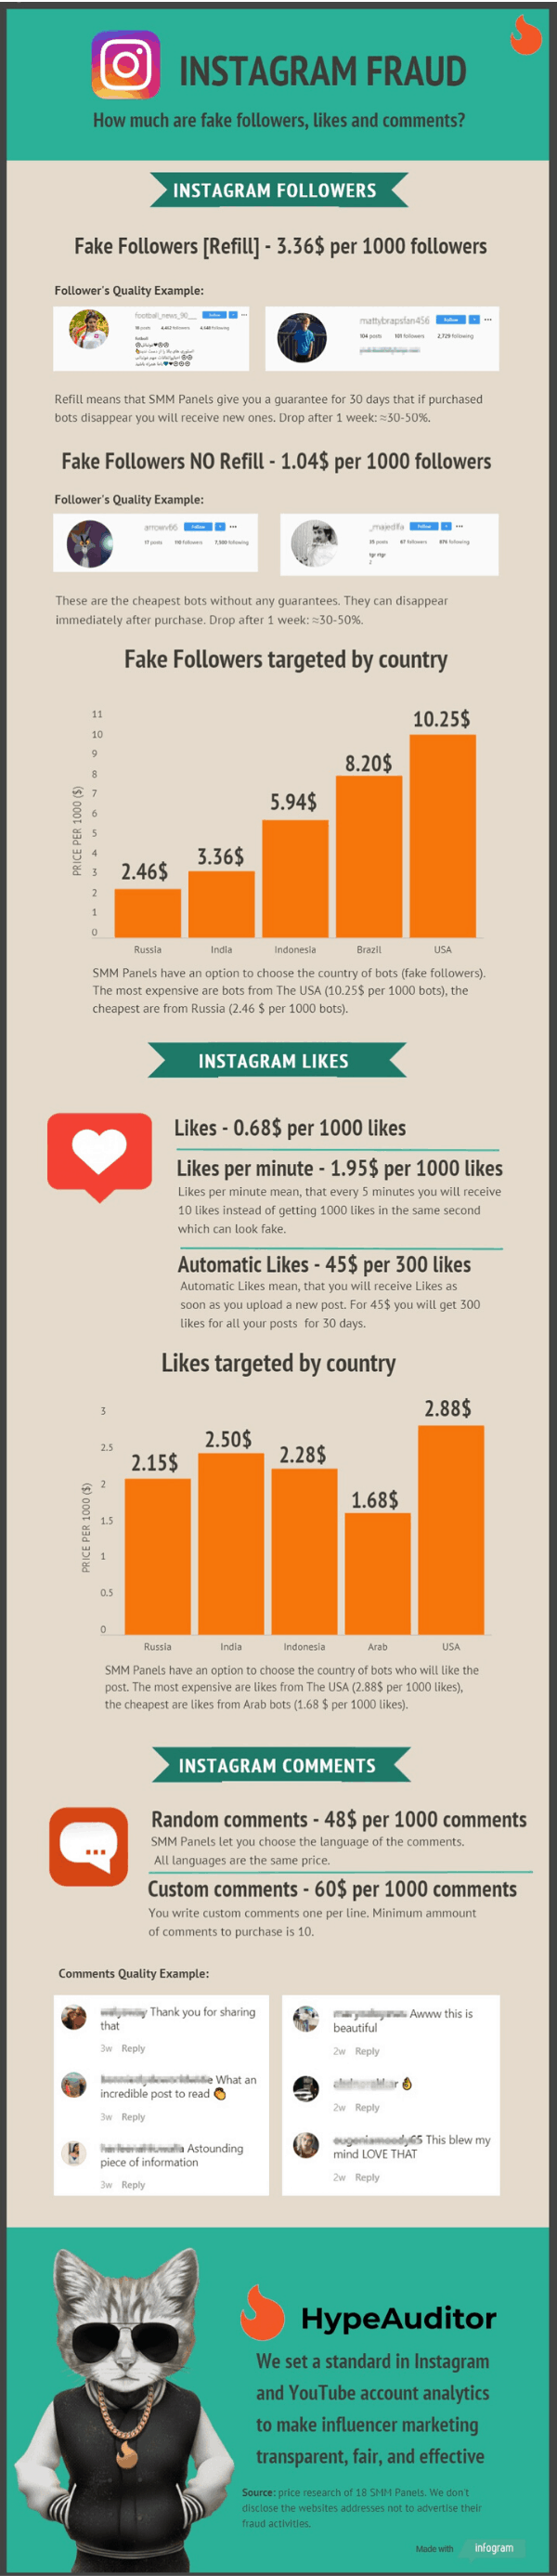 Get a more in-depth look at Instagram fake followers in this amazing infographic.